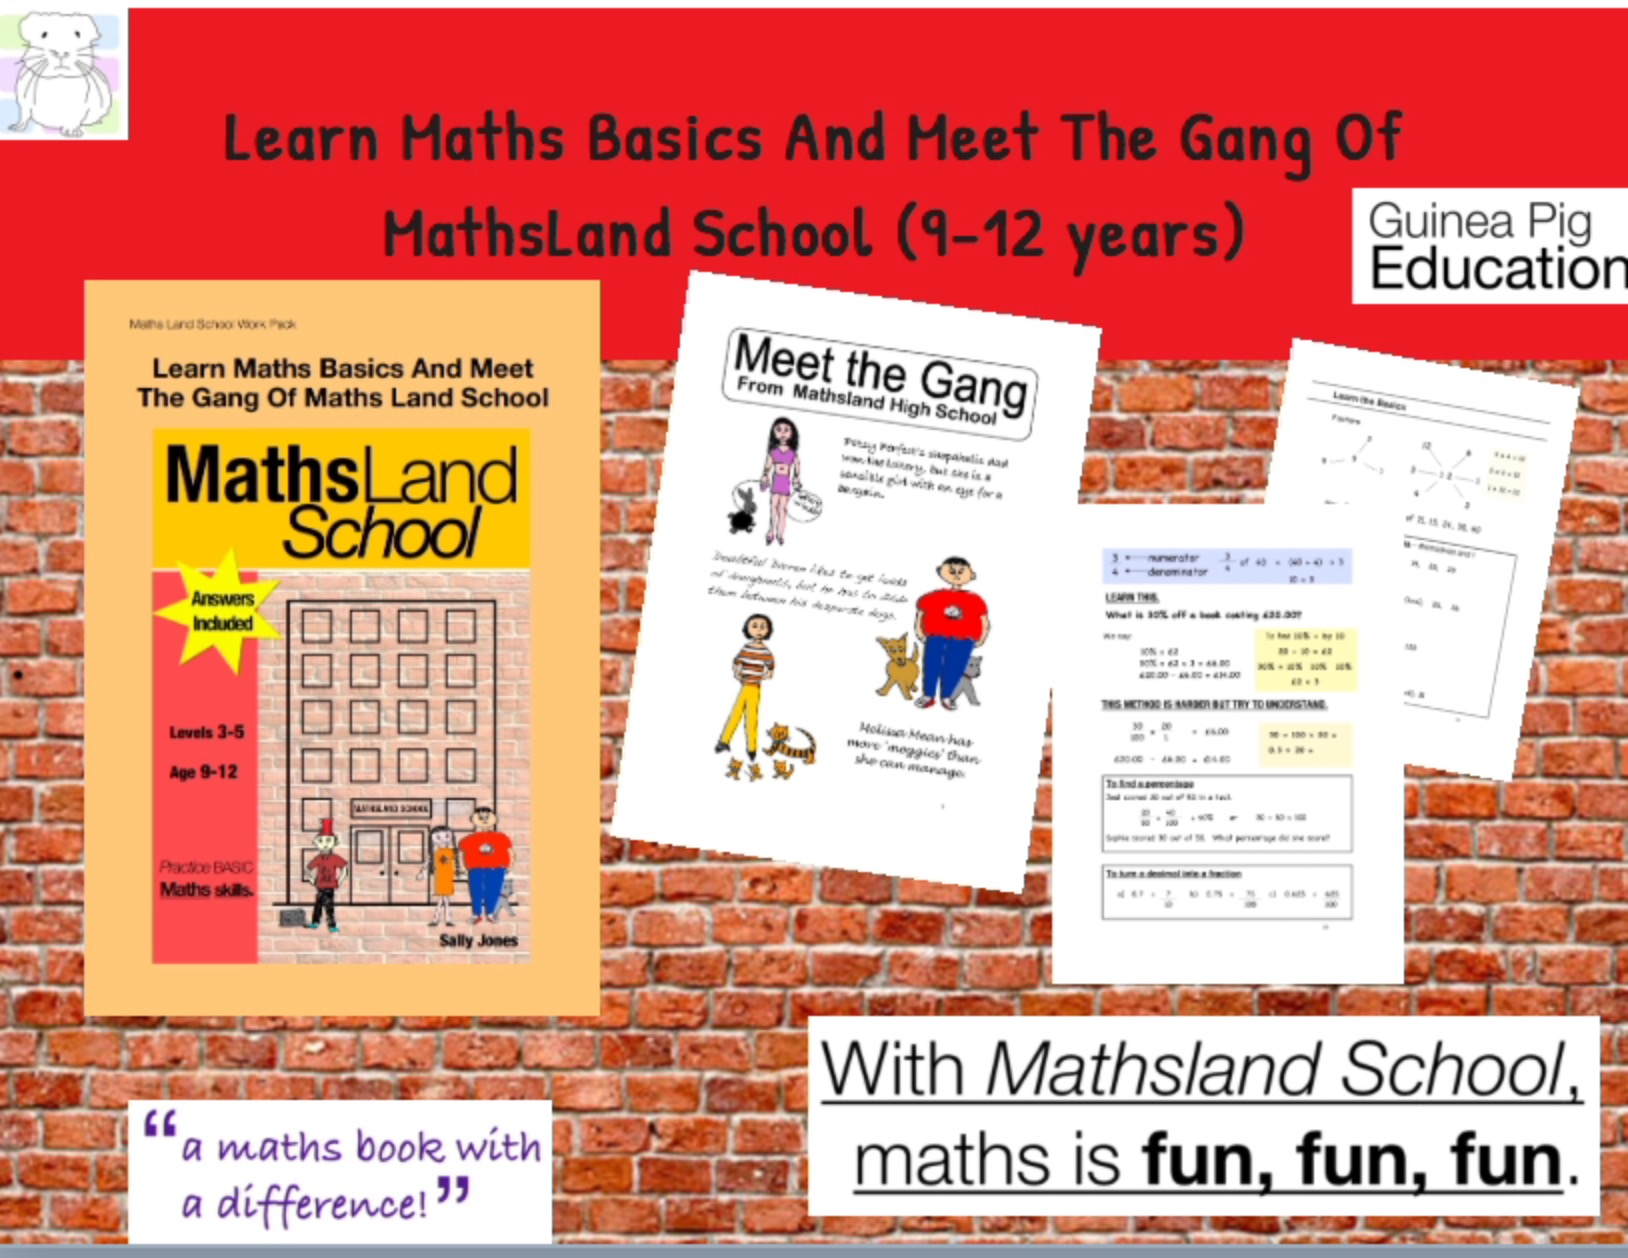 Learn Maths Basics And Meet The Gang Of MathsLand School (9-12 years)